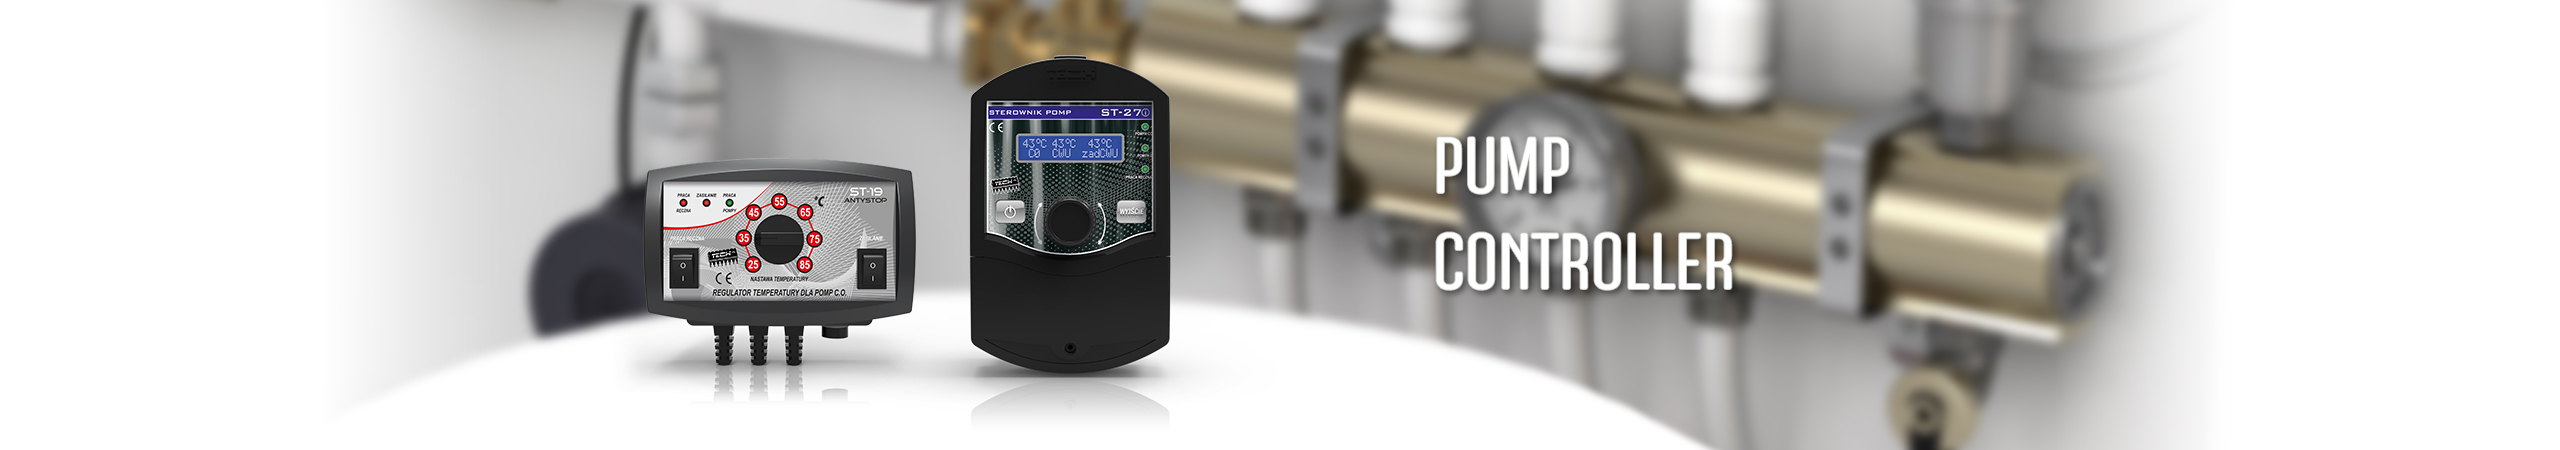 Controllers for central heating pumps - TECH Controllers - TECH Sterowniki